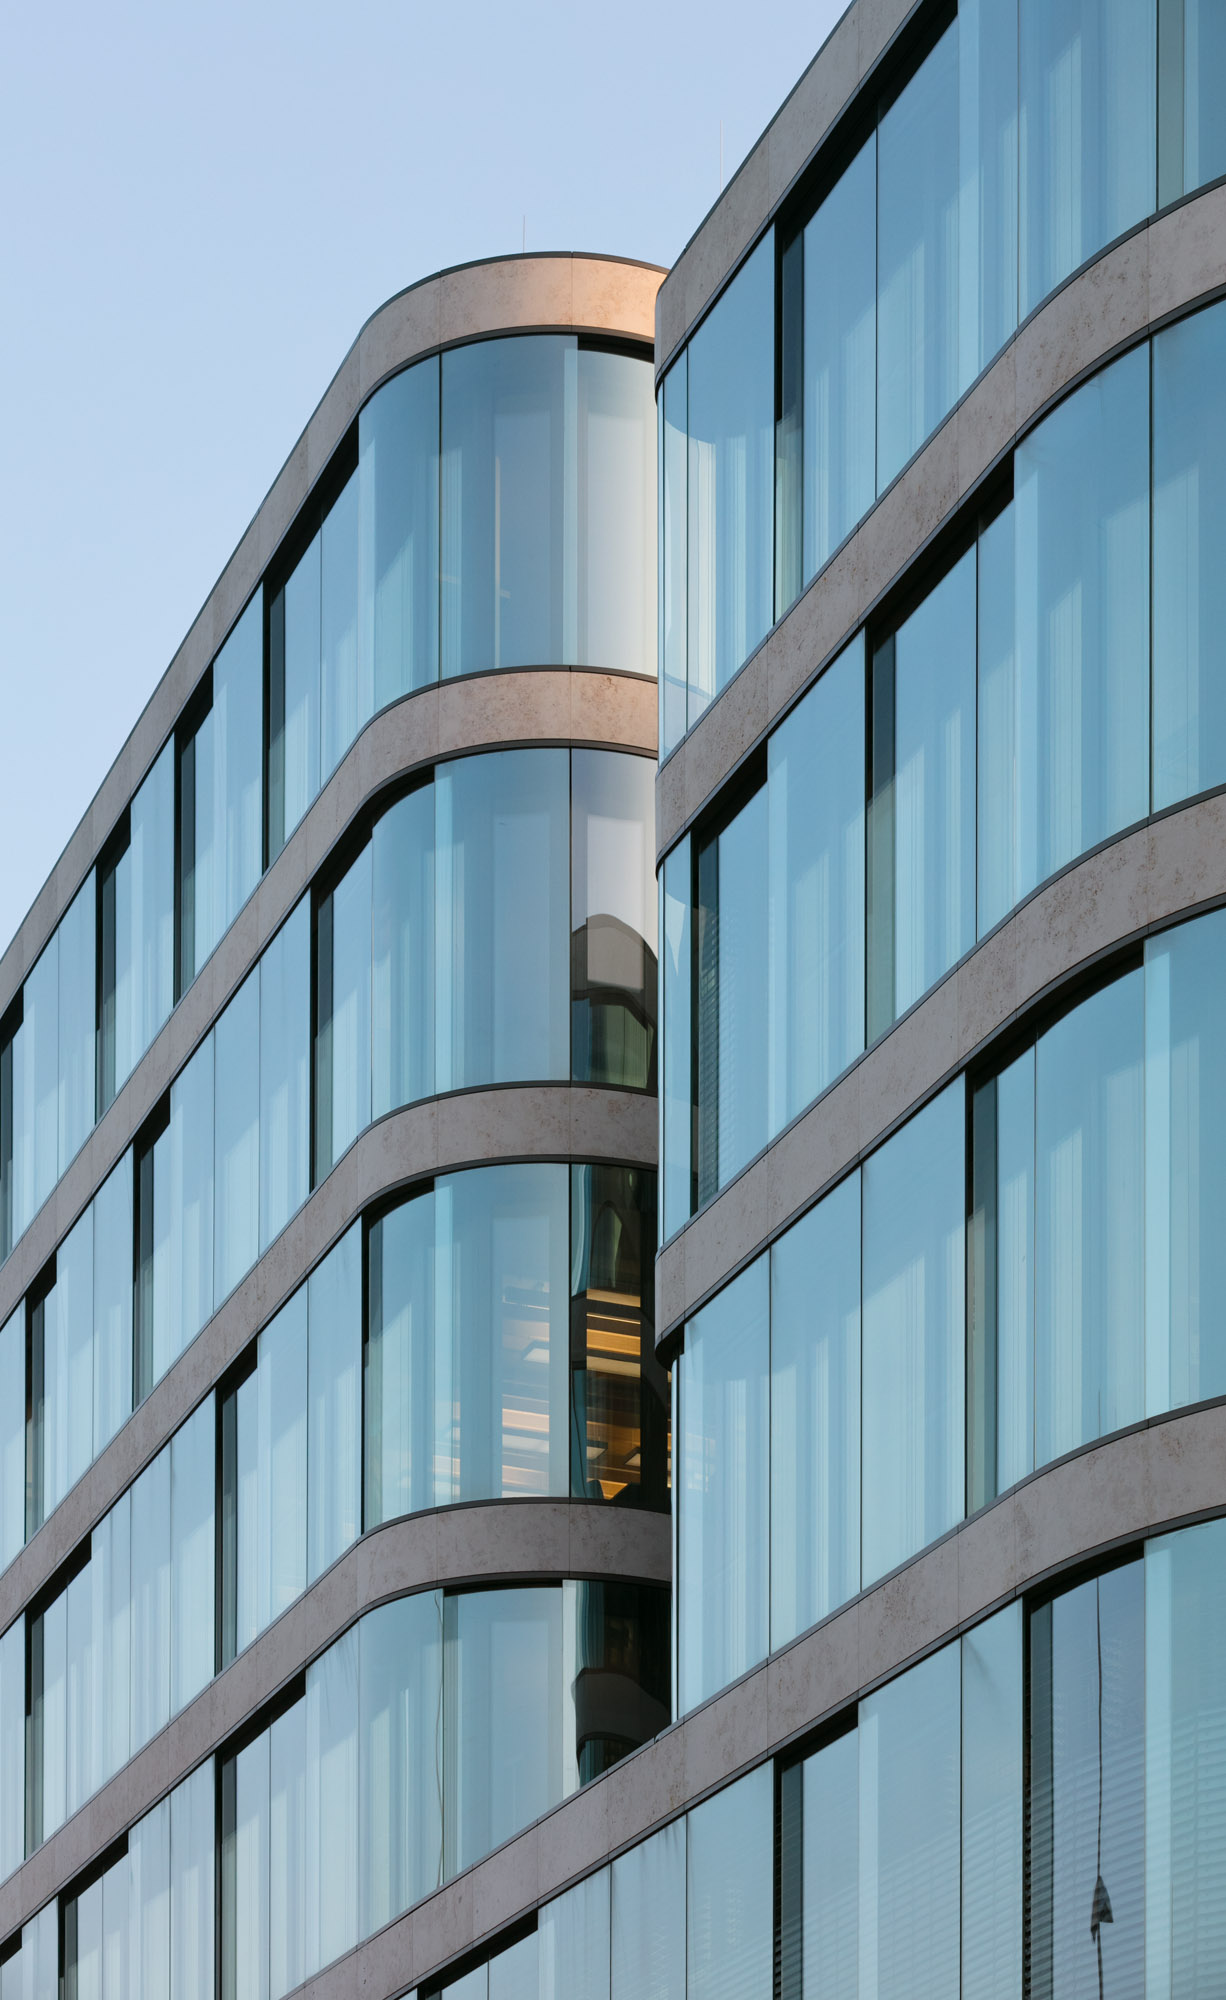 Double-skin-facades_selecting-the-right-combination-of-glass-to-optimise-their-benefits_2.jpg